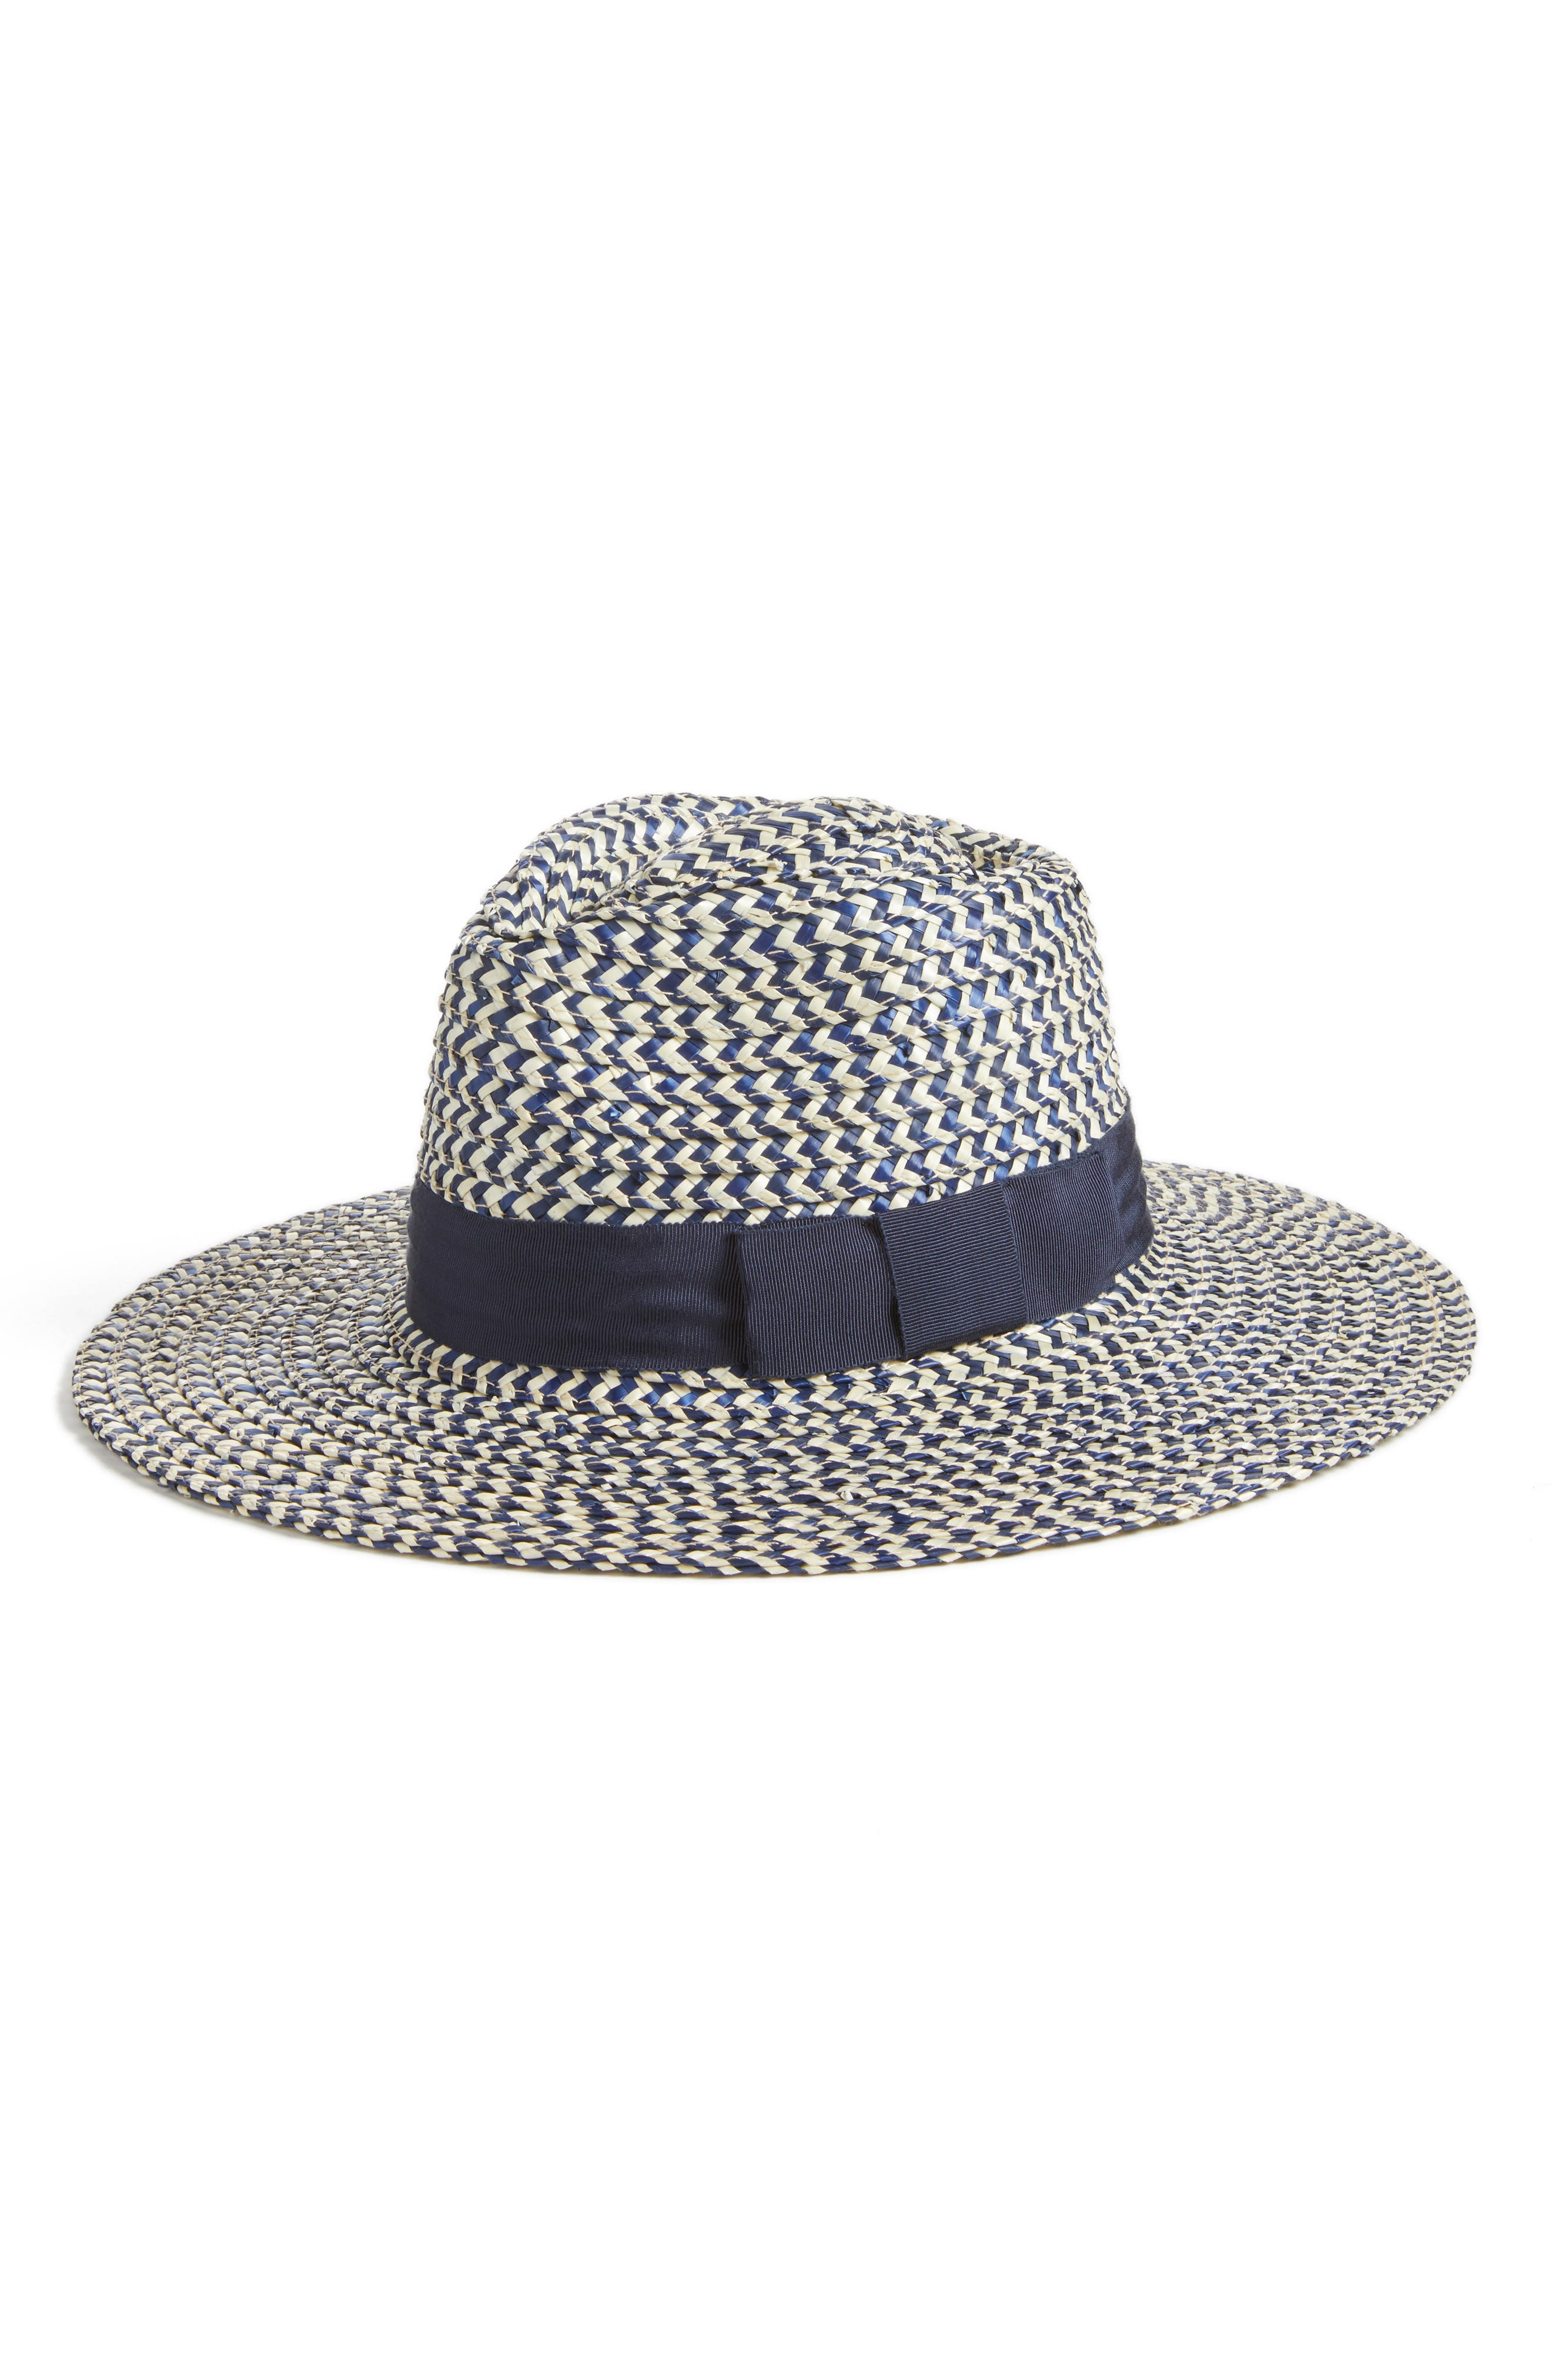 Alternate Image 1 Selected - Brixton 'Joanna' Straw Hat